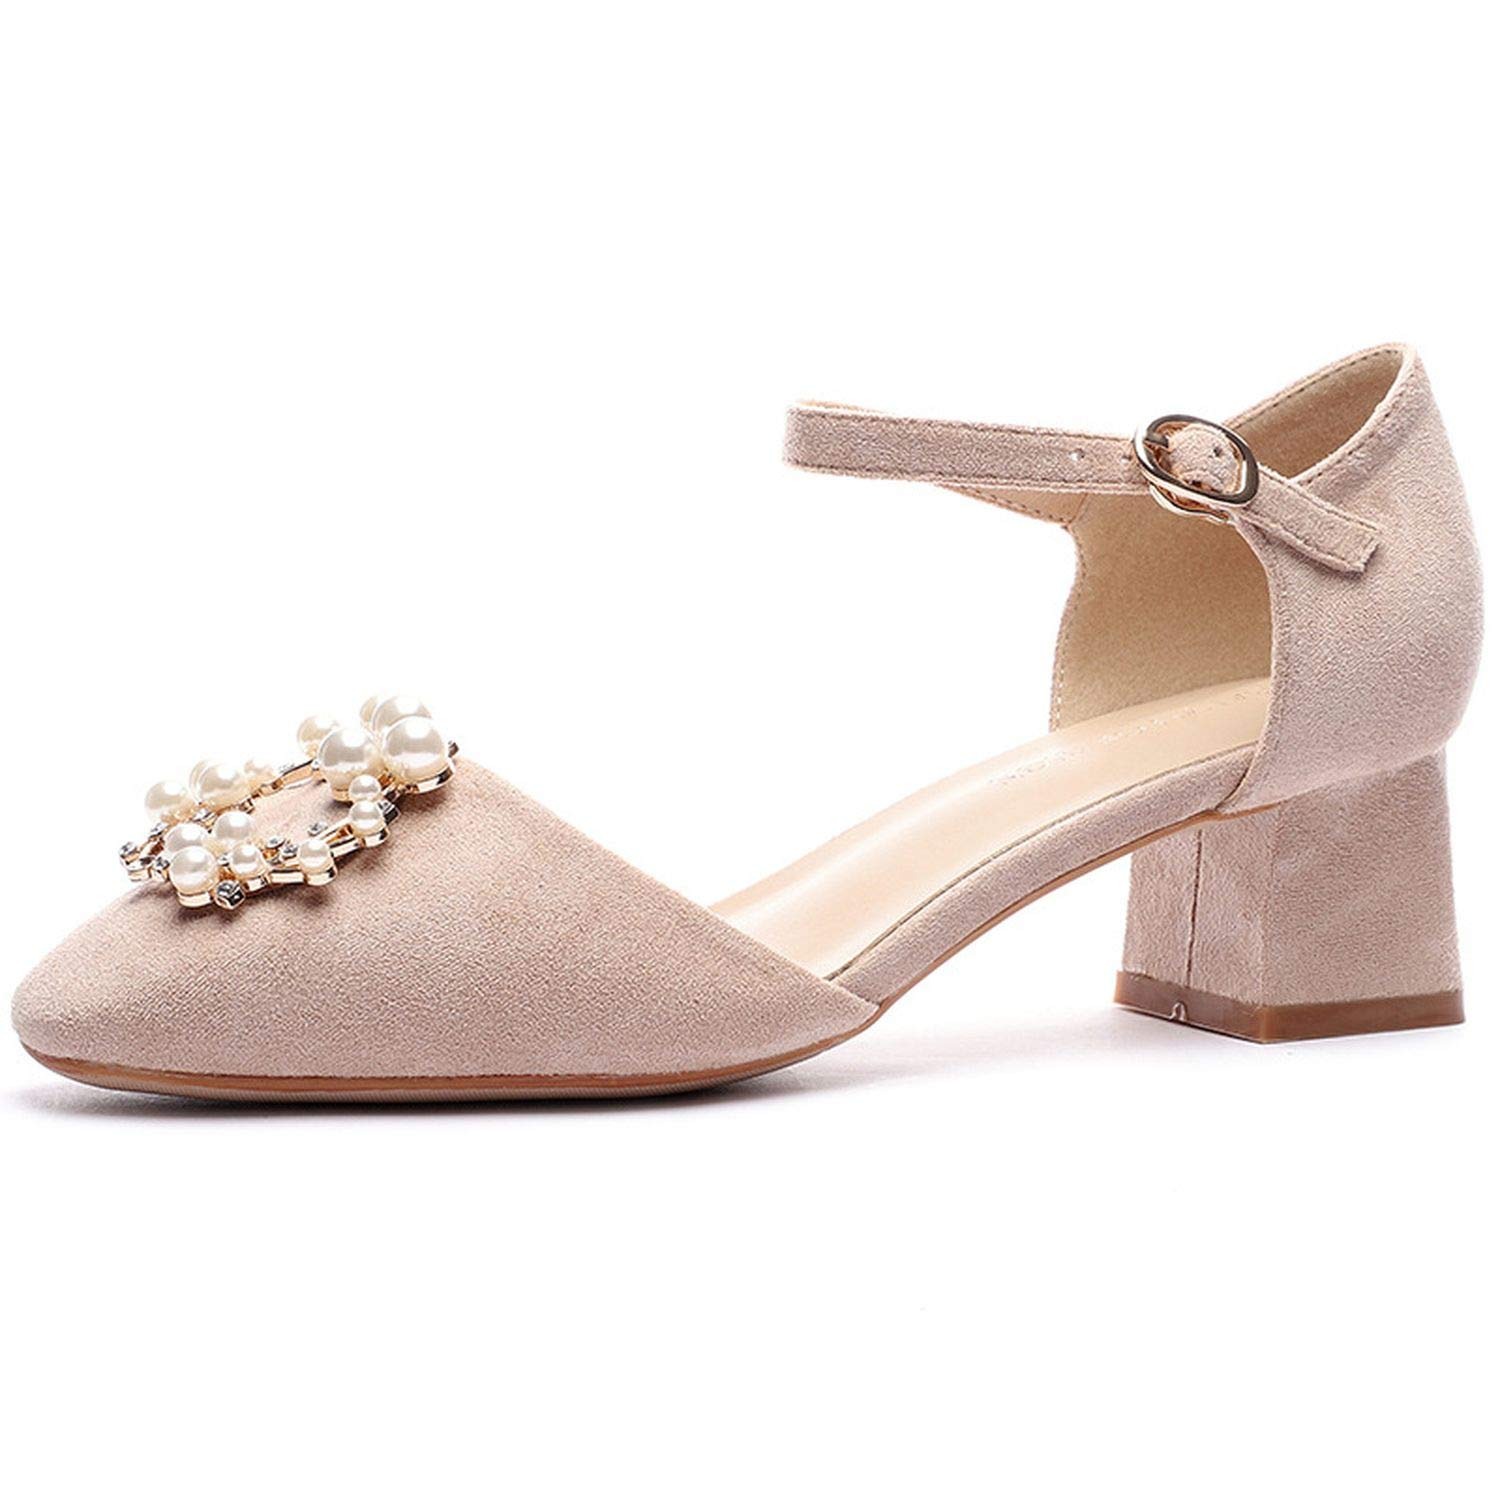 Beige Youthern New Party High Heels shoes Med High Heels Autumn Solid Pearls Buckle Square Heels Pumps Women Flock Sandals